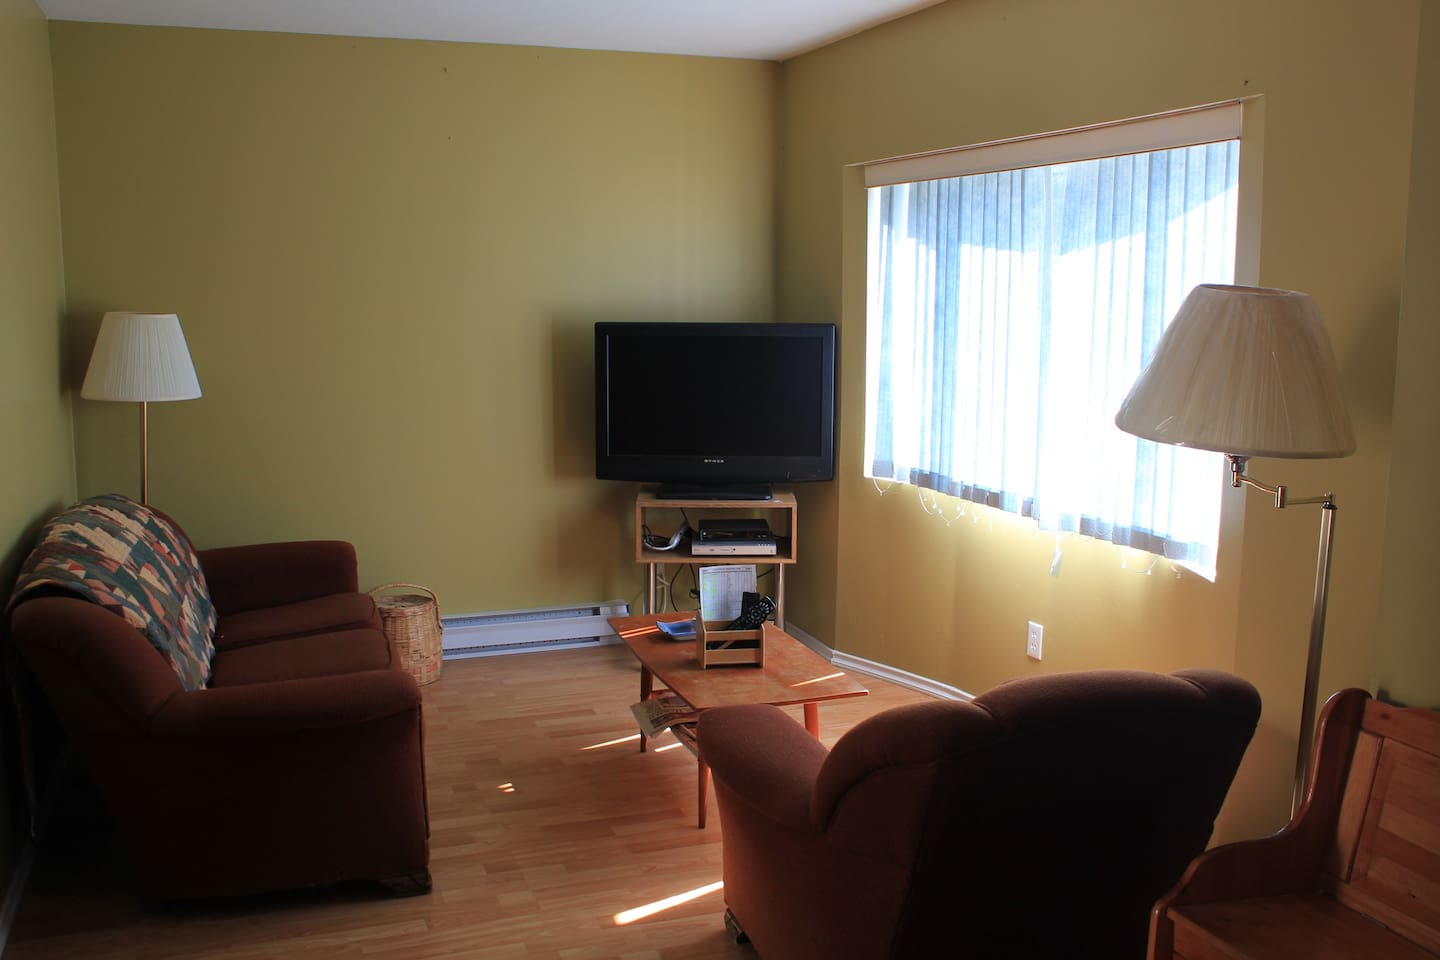 Living room - cozy, comfy.  27 inch TV, DVD player, basic cable included but you will probably be outside enjoying the fabulous Okanagan amenities